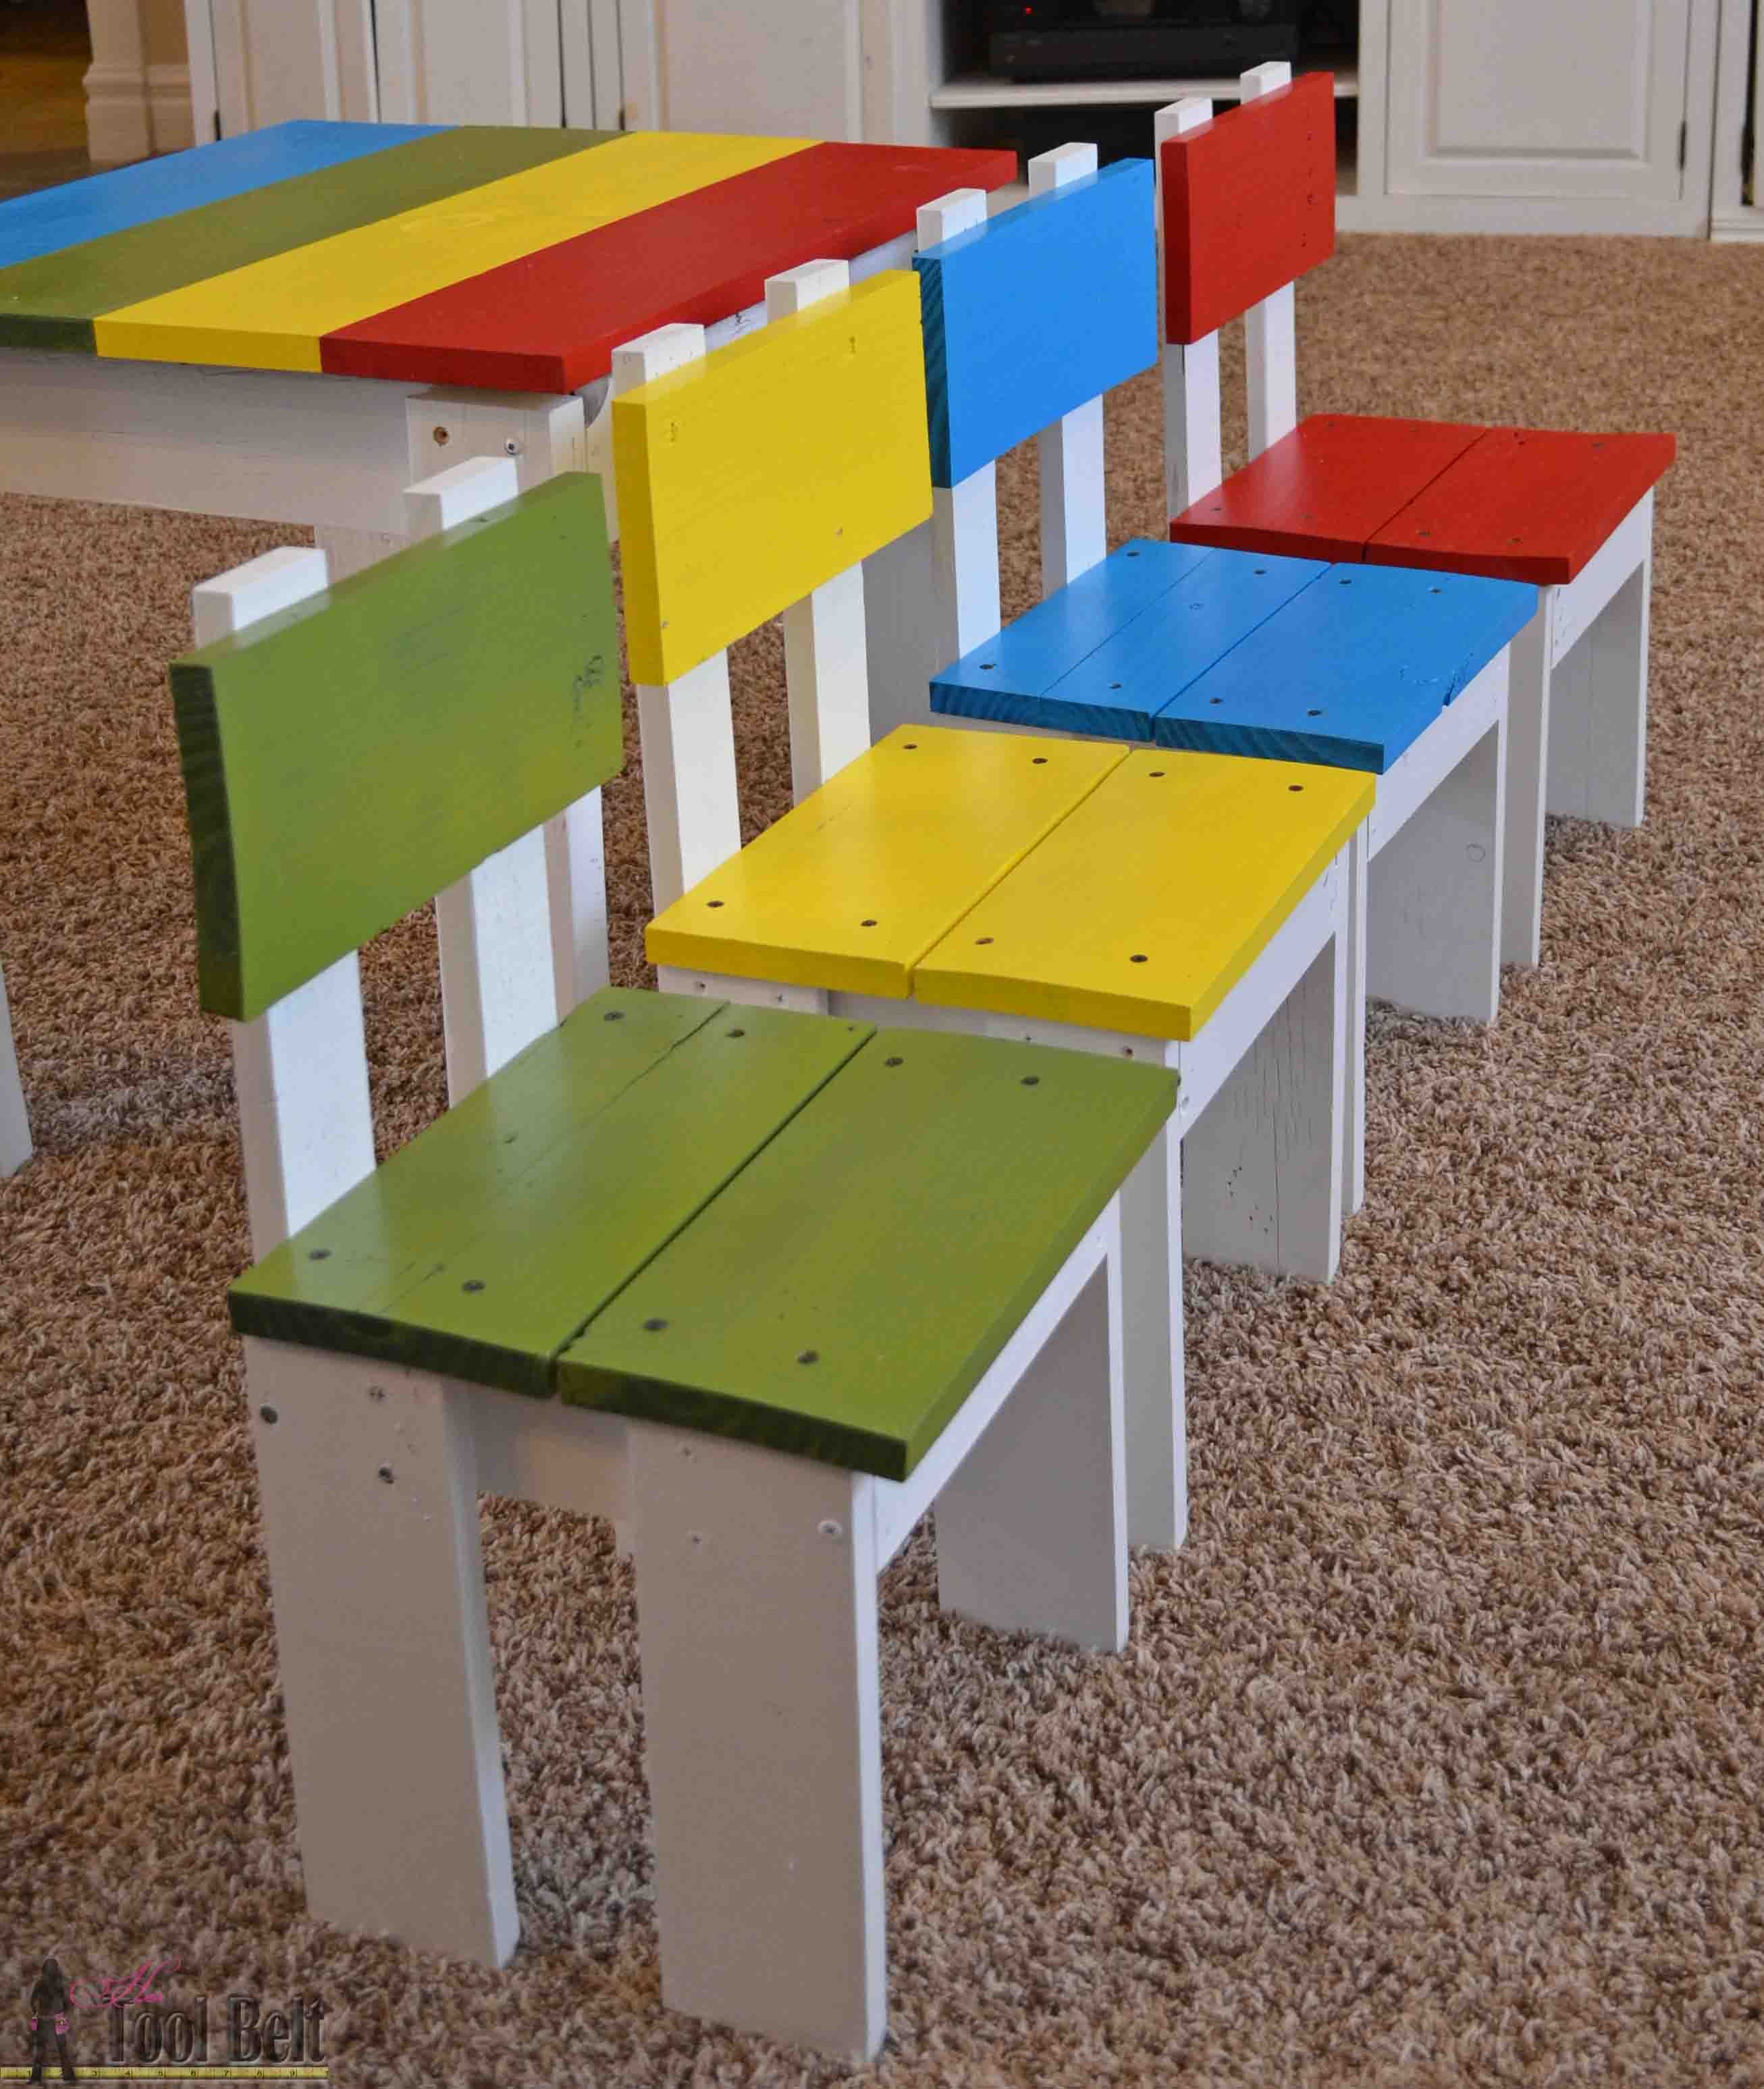 Simple Kid\'s Table and Chair Set | El conjunto, Niños pequeños y ...